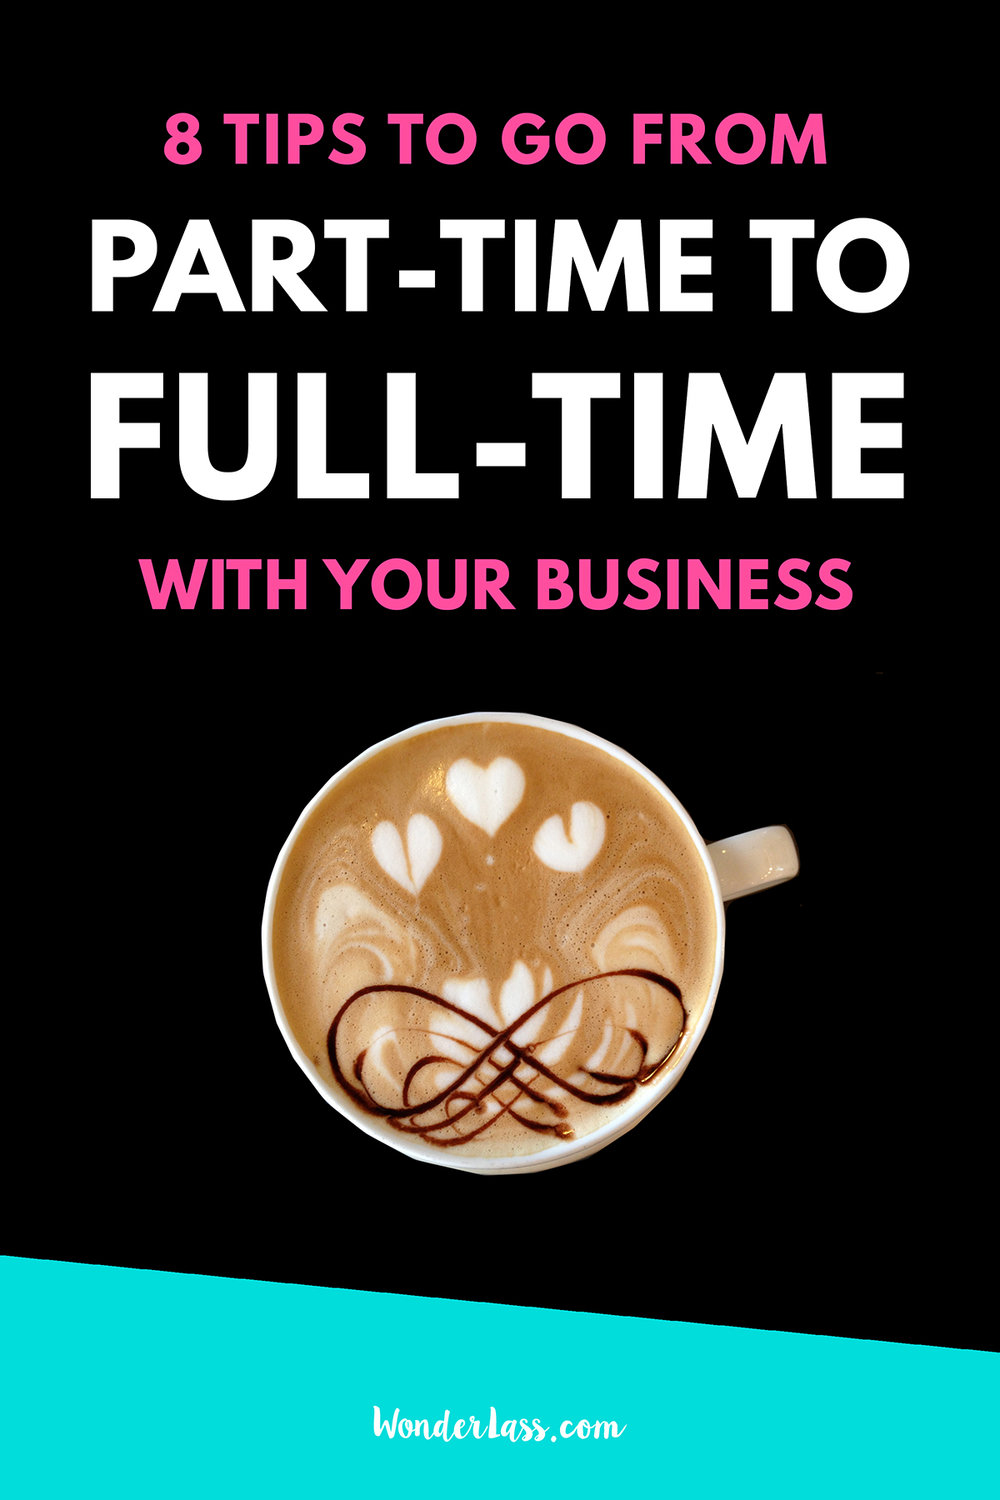 8 Tips to Take Your Business from Part-Time to Full-Time | Wonderlass